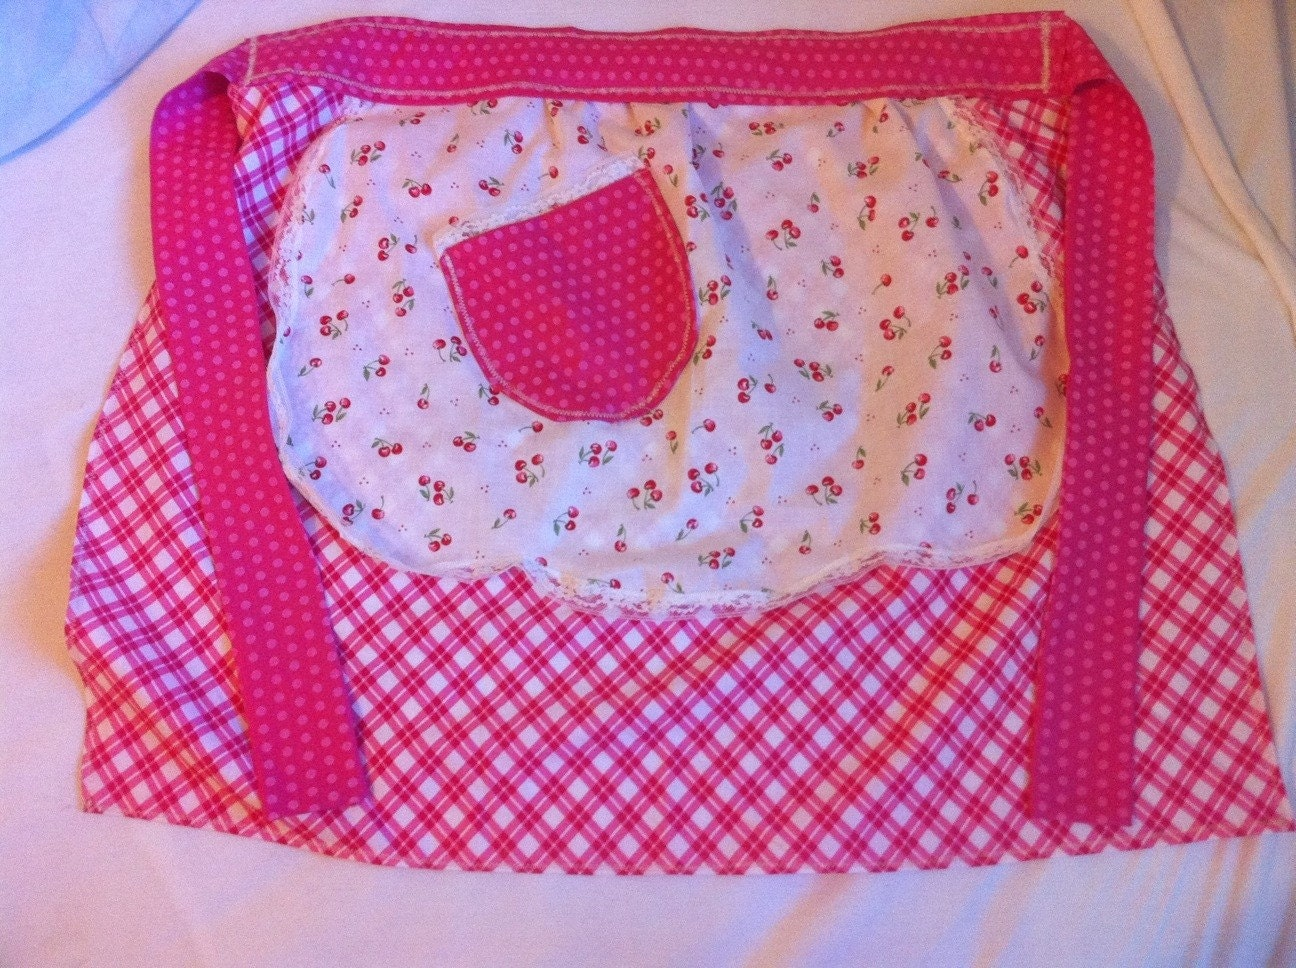 Cherry half apron vintage style with cherries on gingham with polka dot band.